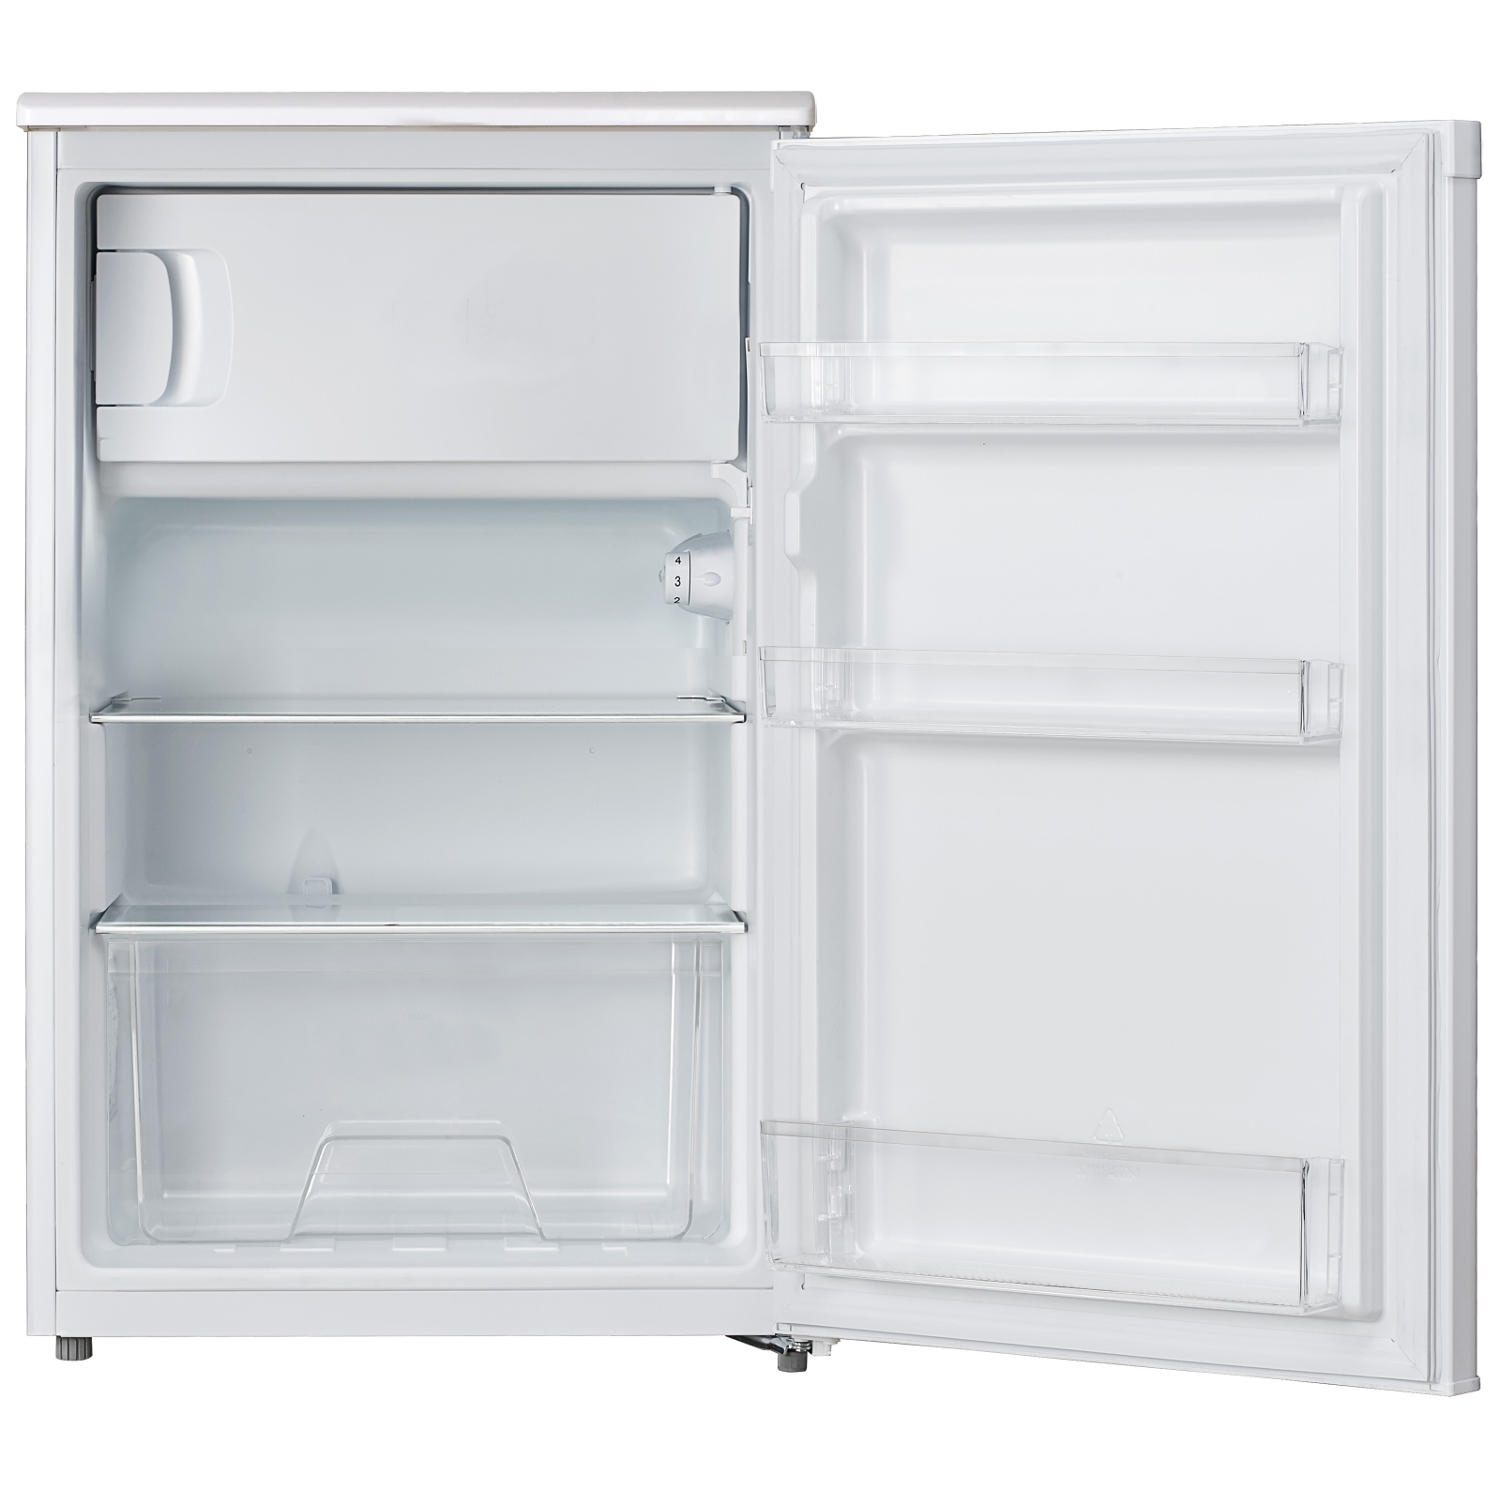 Lec R5017W 50cm Undercounter Fridge - White - 1